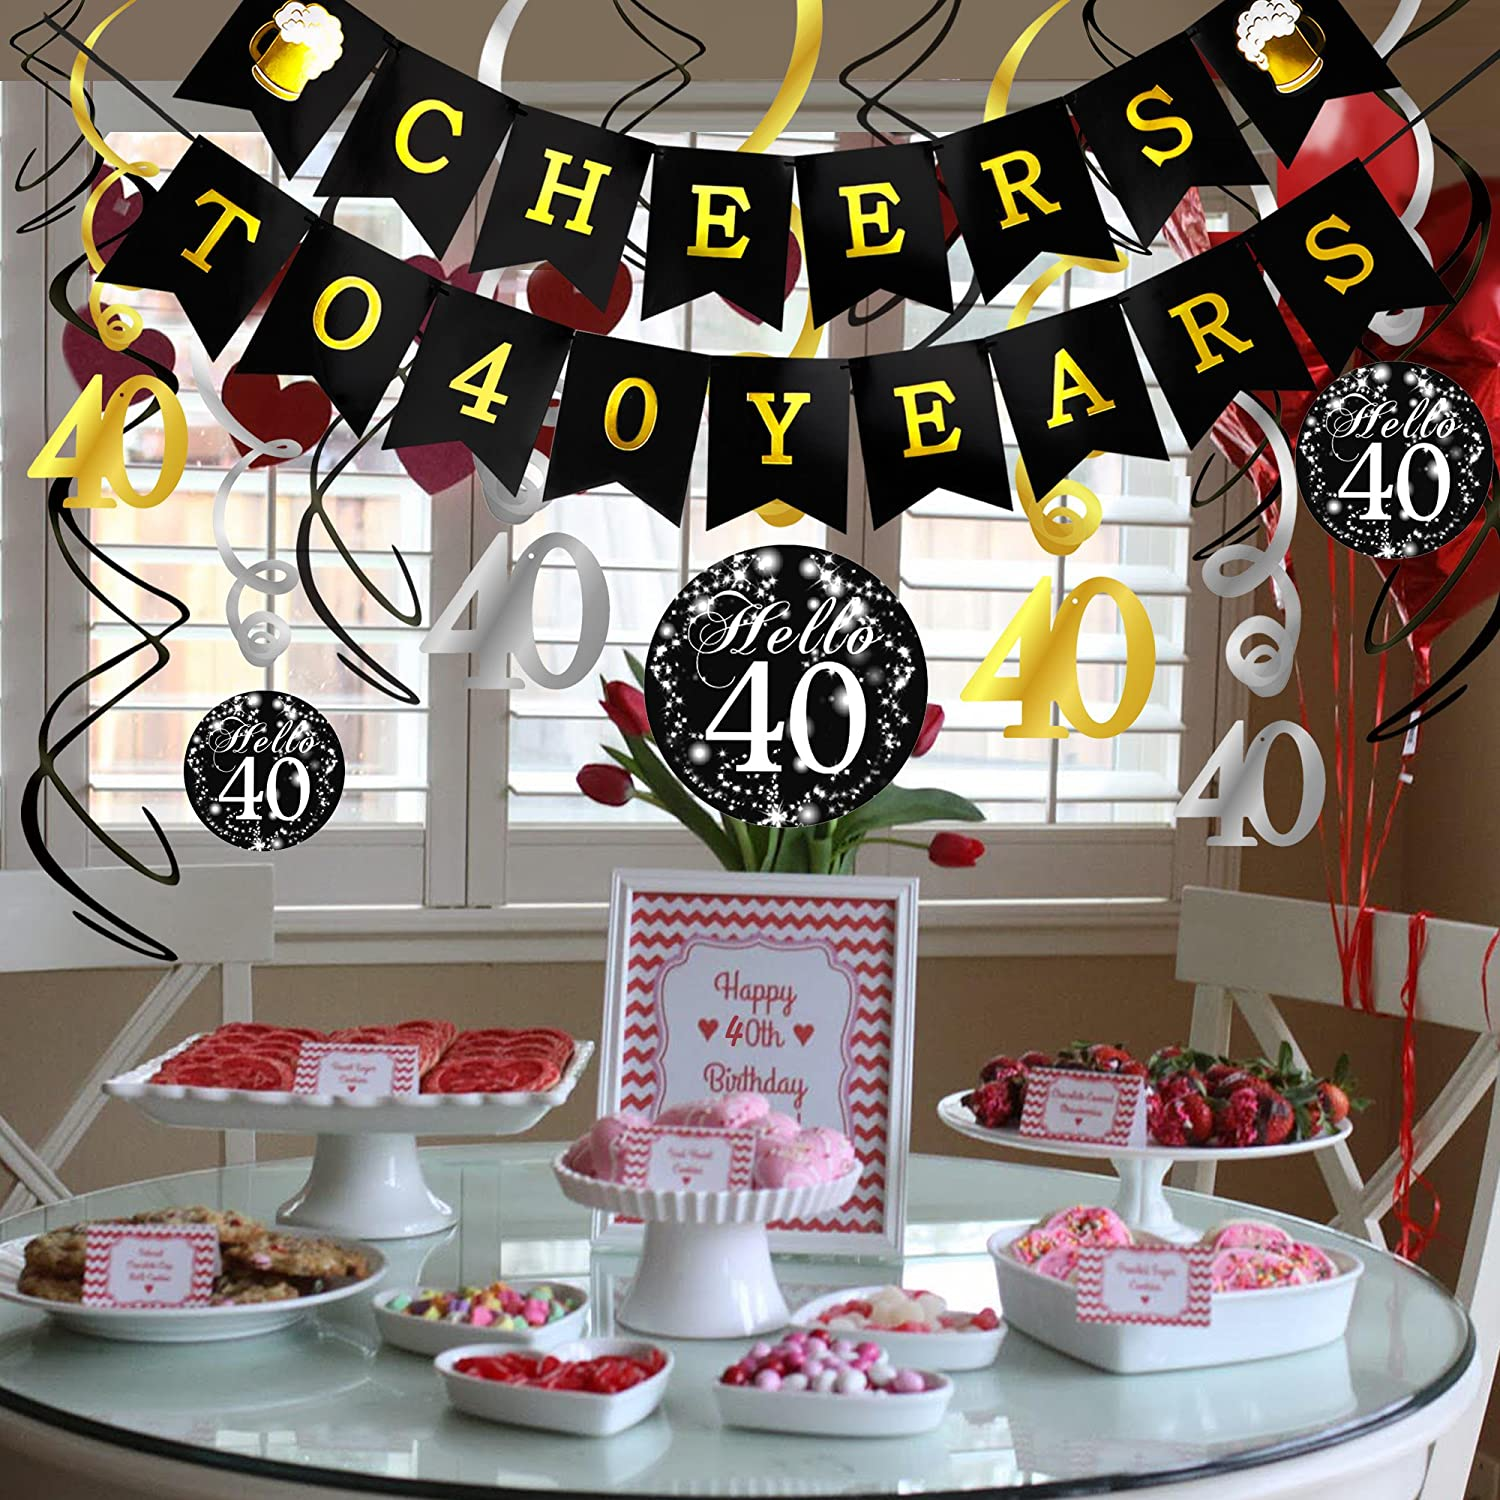 40th Birthday Decorations Kit- Konsait Cheers to 40 Years Banner Swallowtail Bunting Garland Sparkling Celebration 40 Hanging Swirls,Perfect 40 Years ...